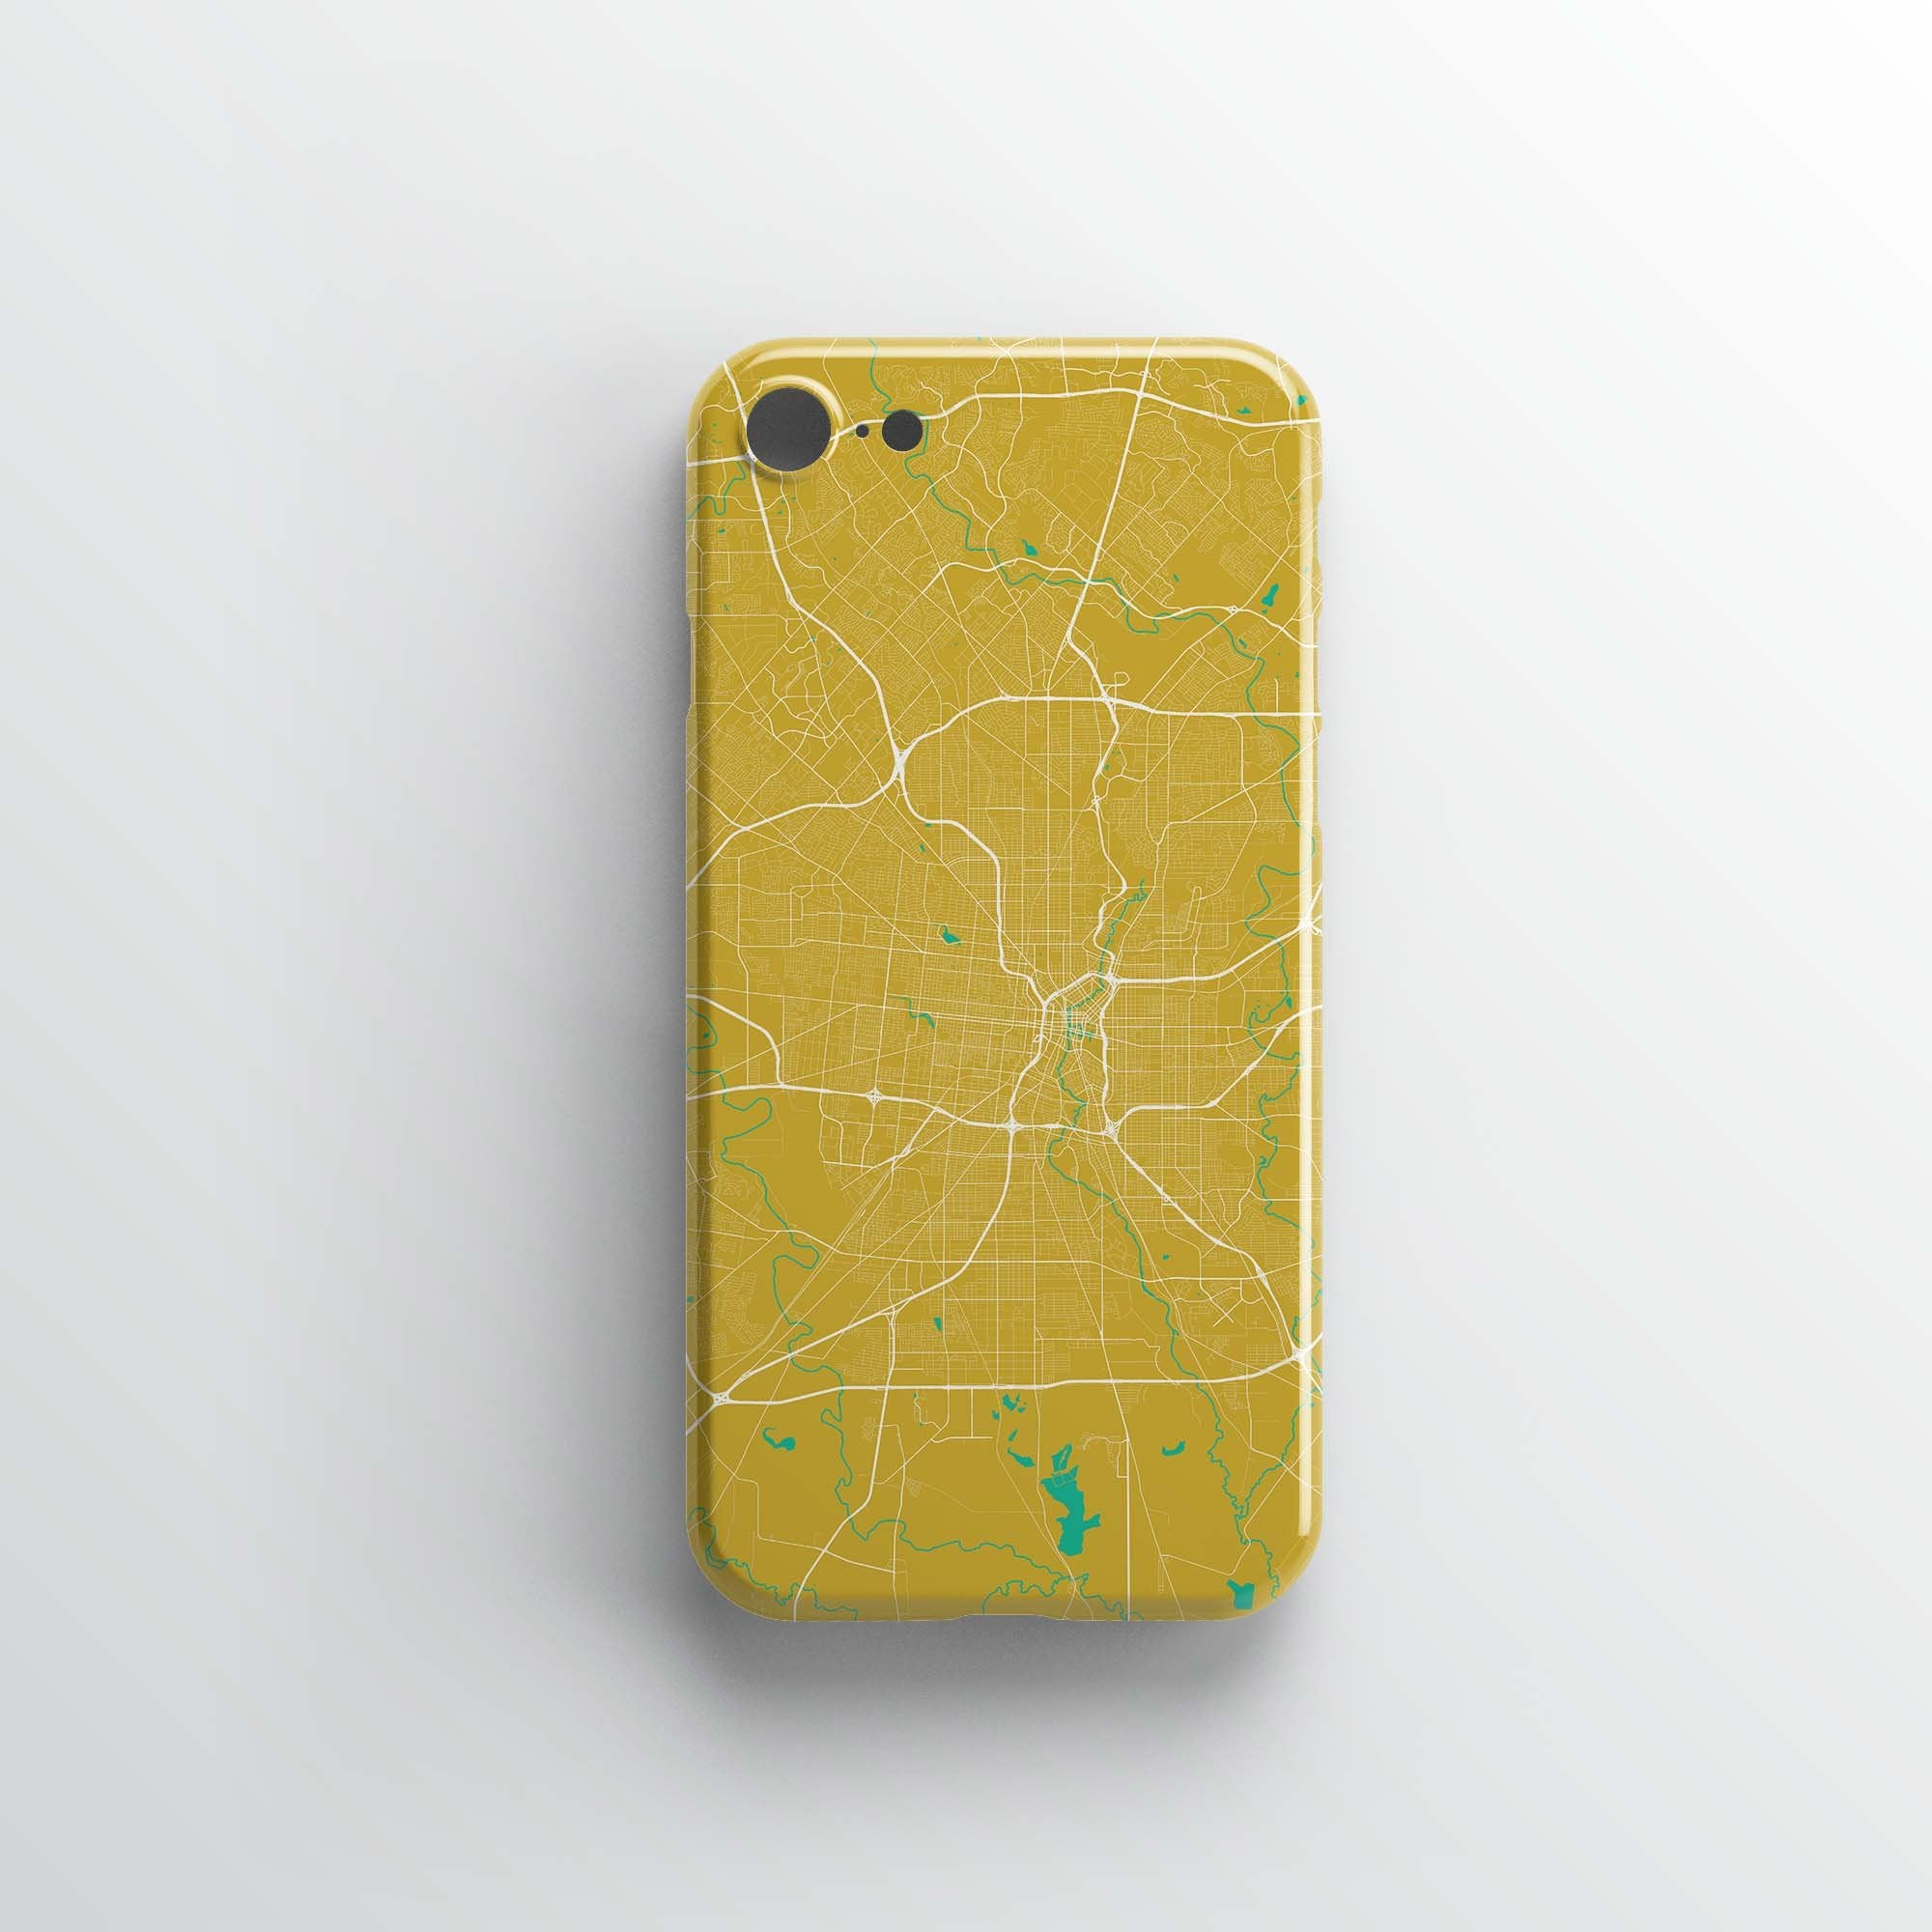 San Antonio City iPhone Case